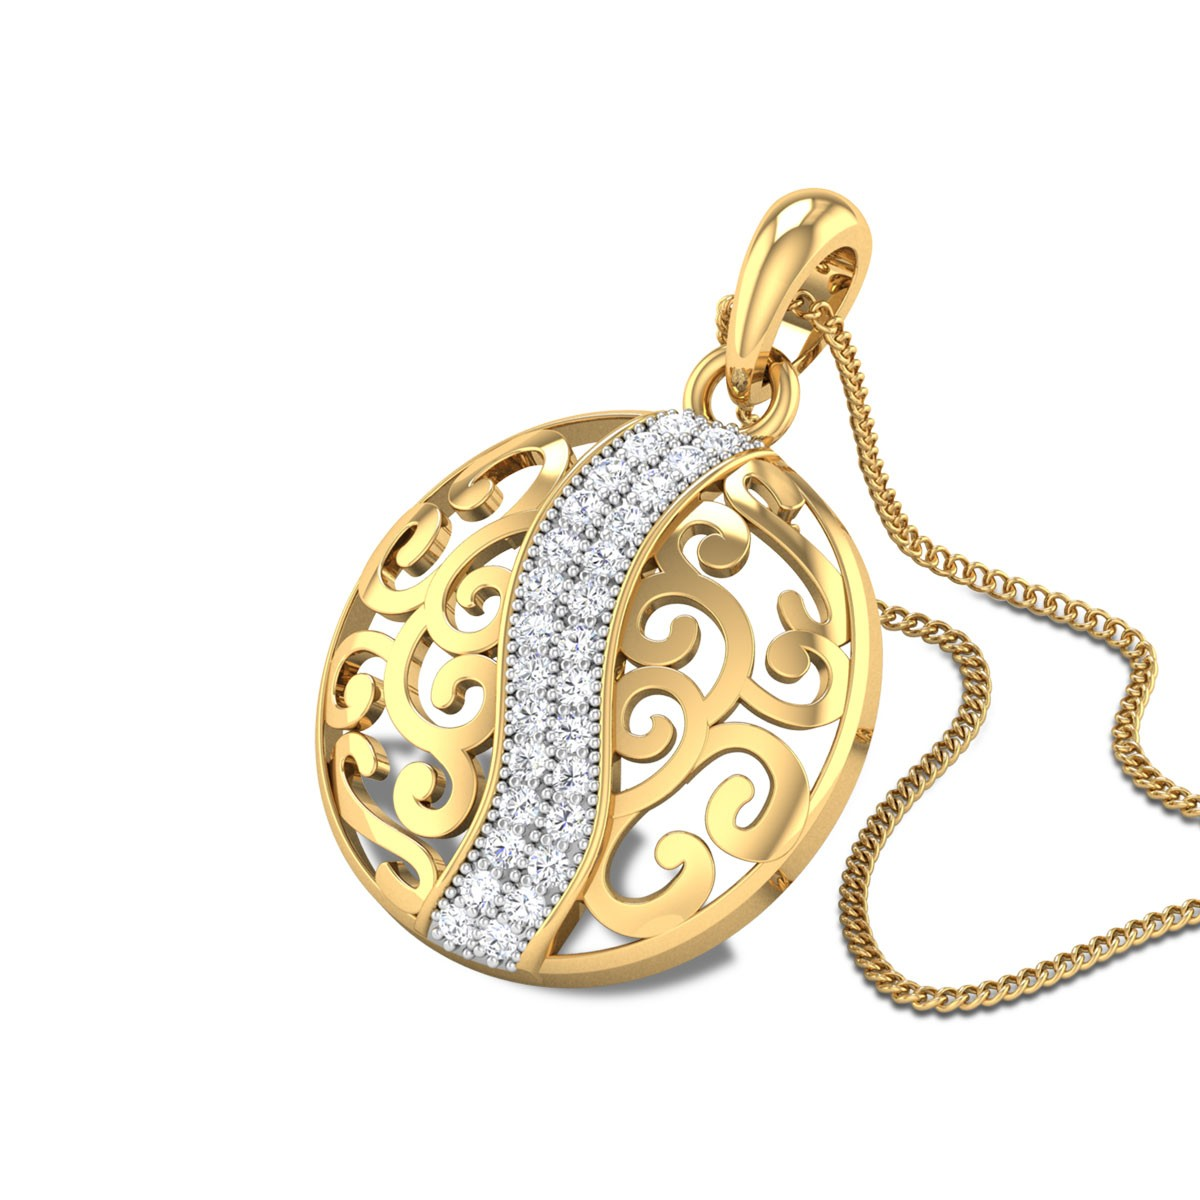 Panchita Diamond Pendant